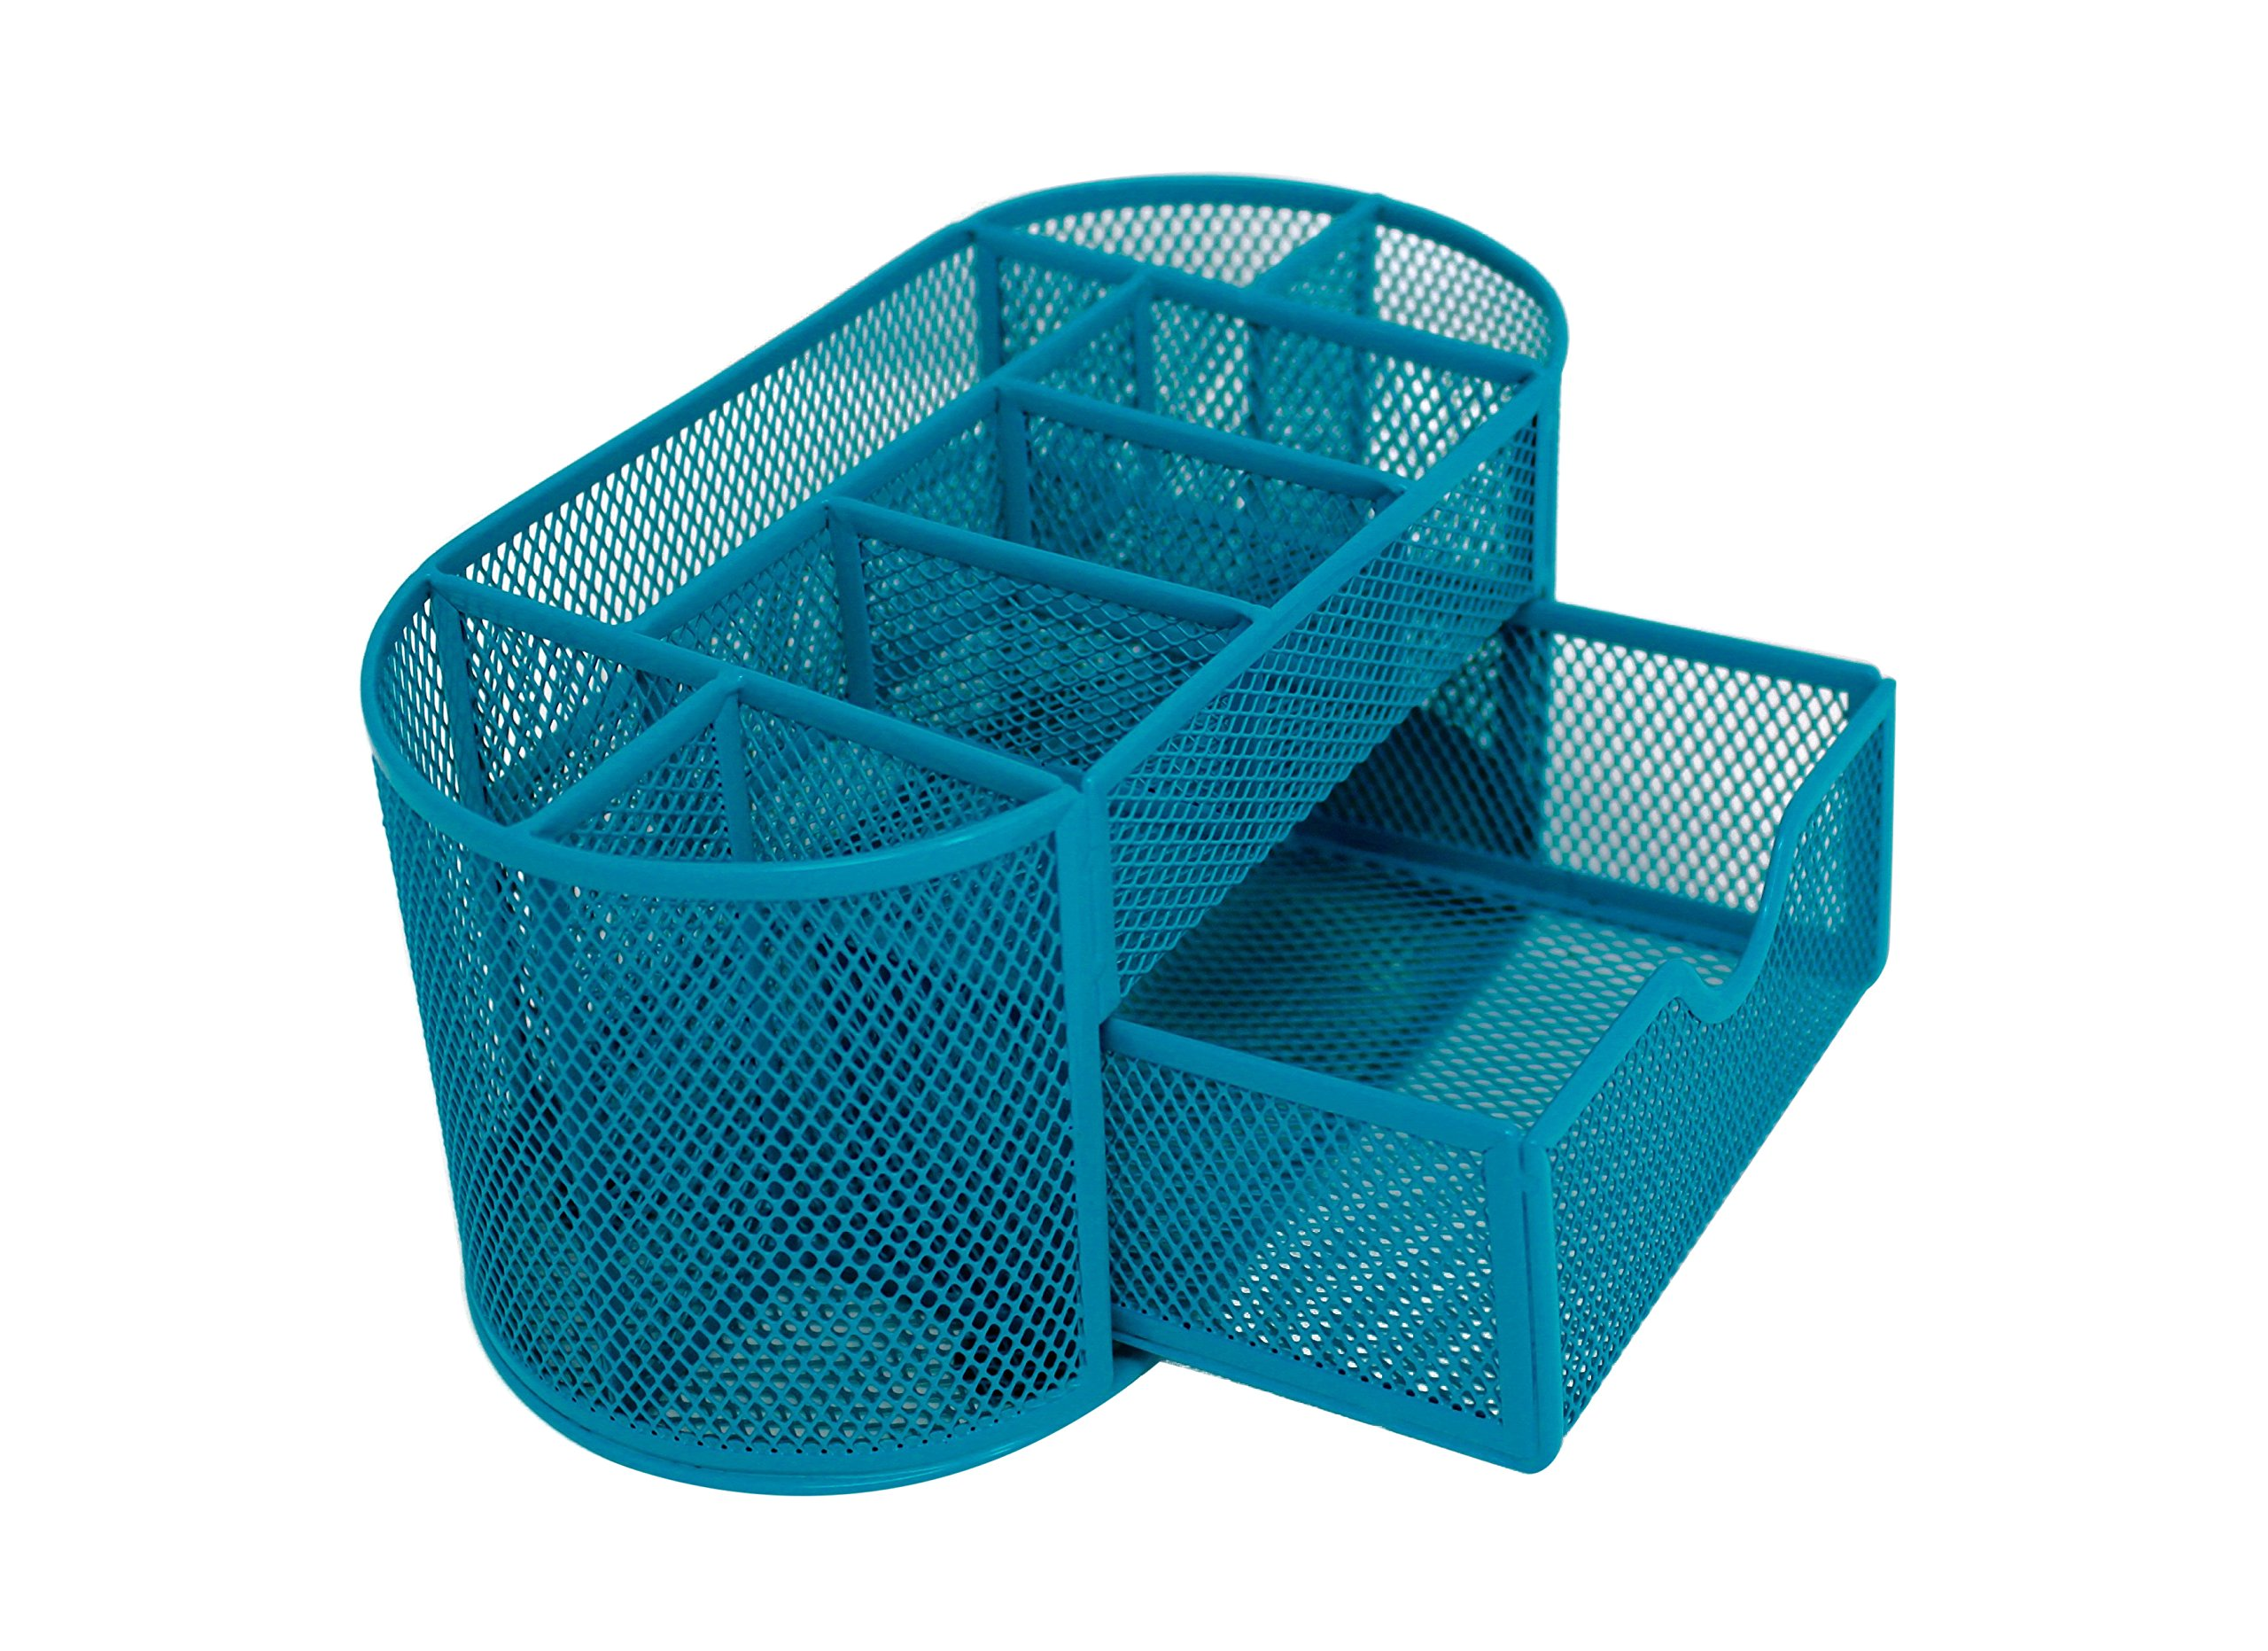 Mesh Desk Organizer 9 Components Office Accessories Supply Caddy with Drawer (Teal)